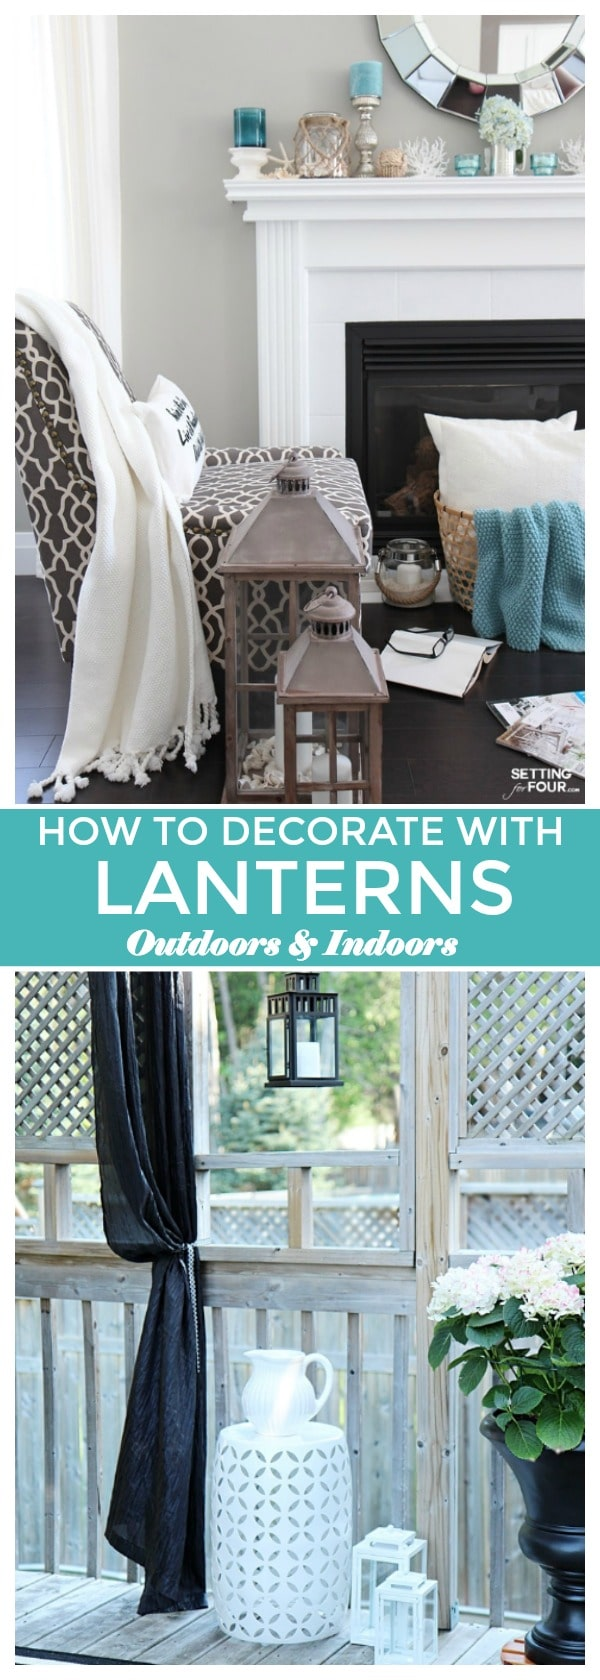 Decorating with Lanterns - Outdoor and Indoor Ideas - Setting for Four